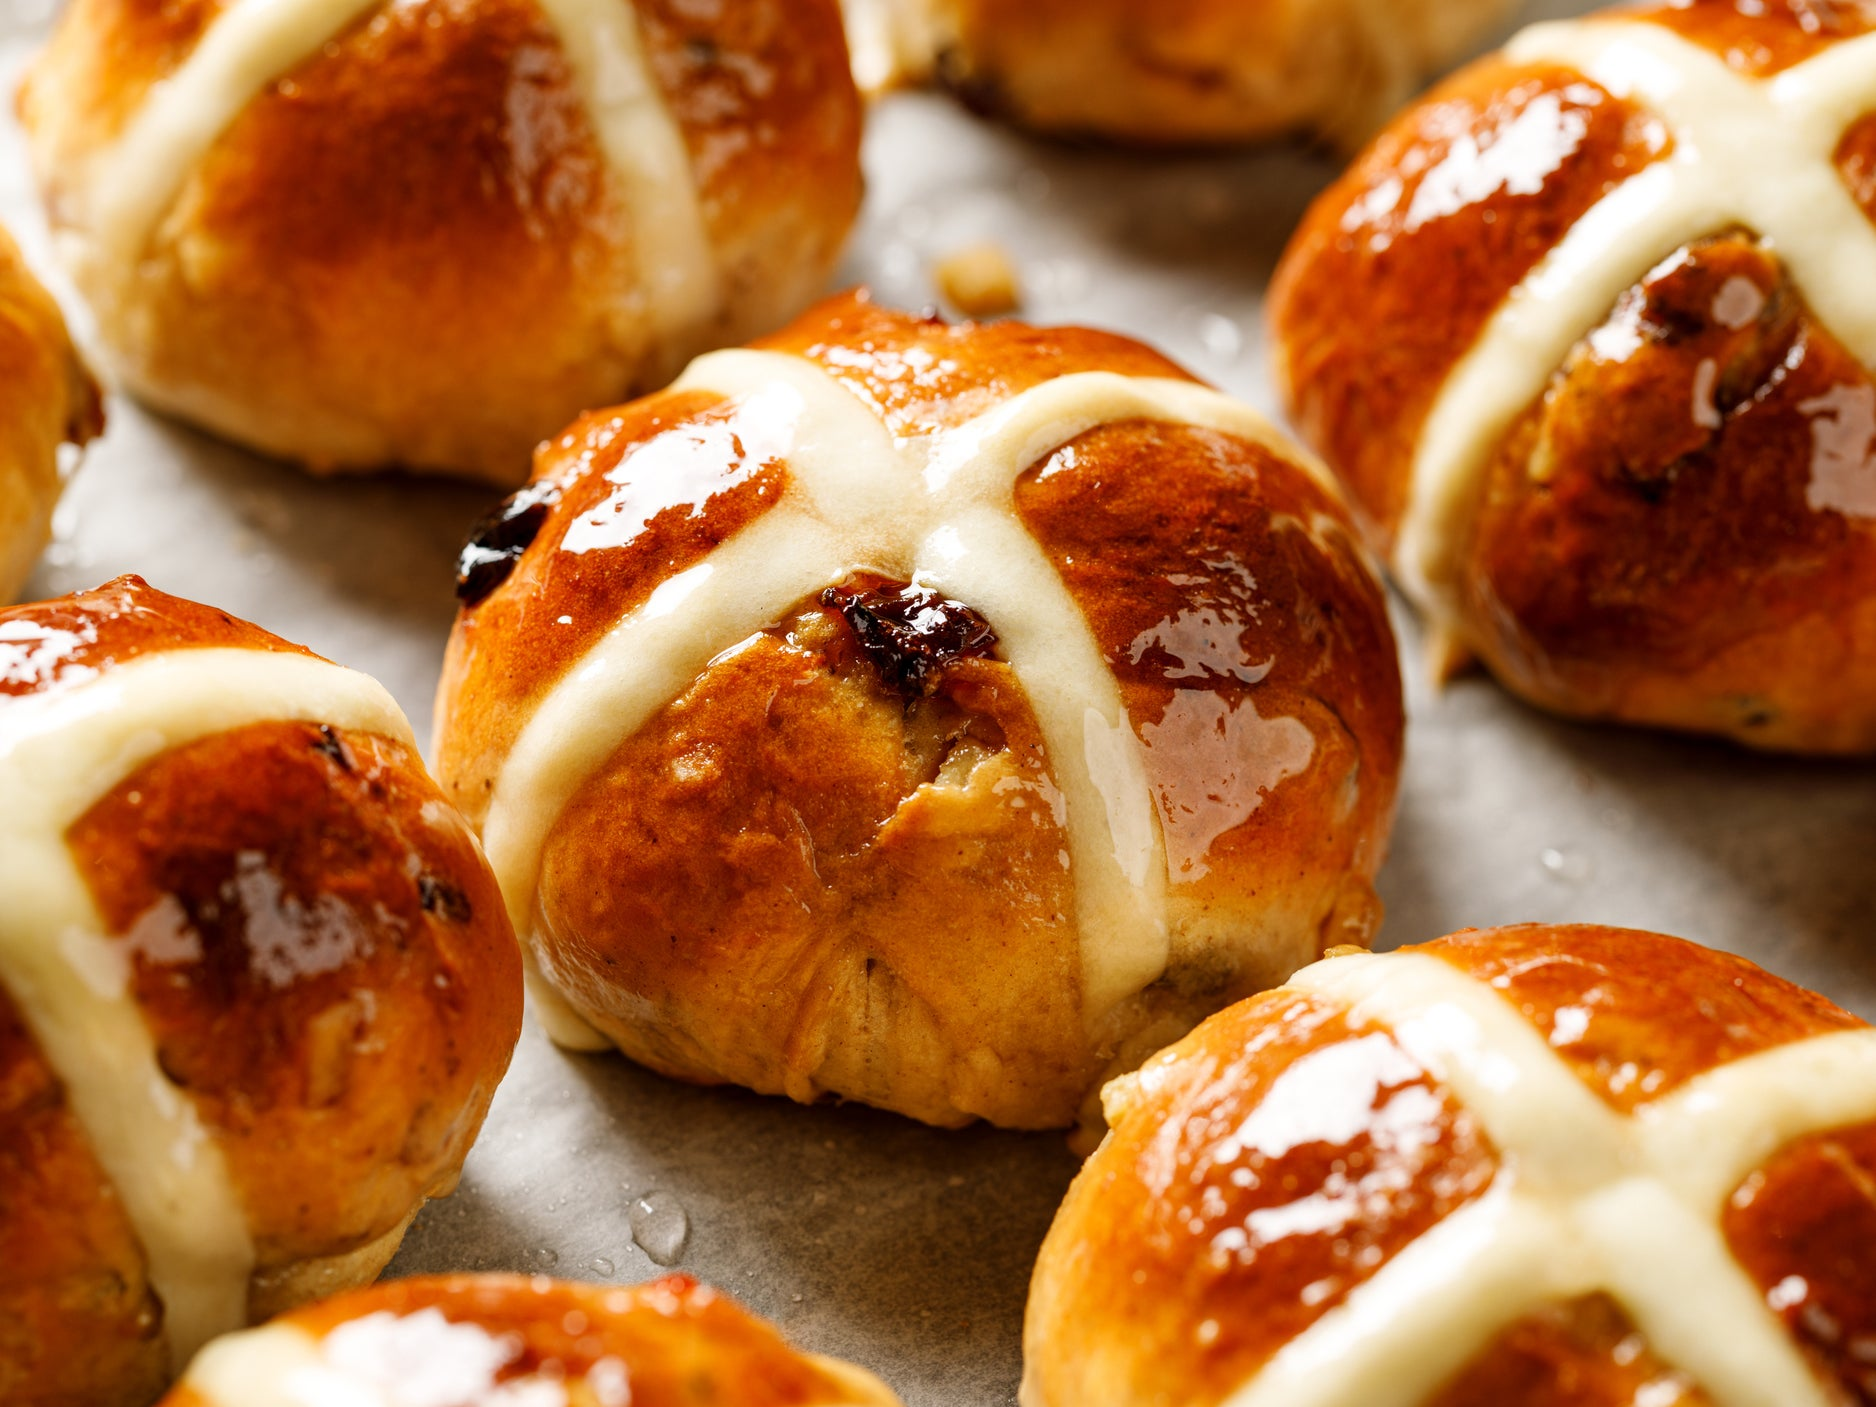 Dog owners warned not to let pets eat hot cross buns due to 'toxic effects of raisins'